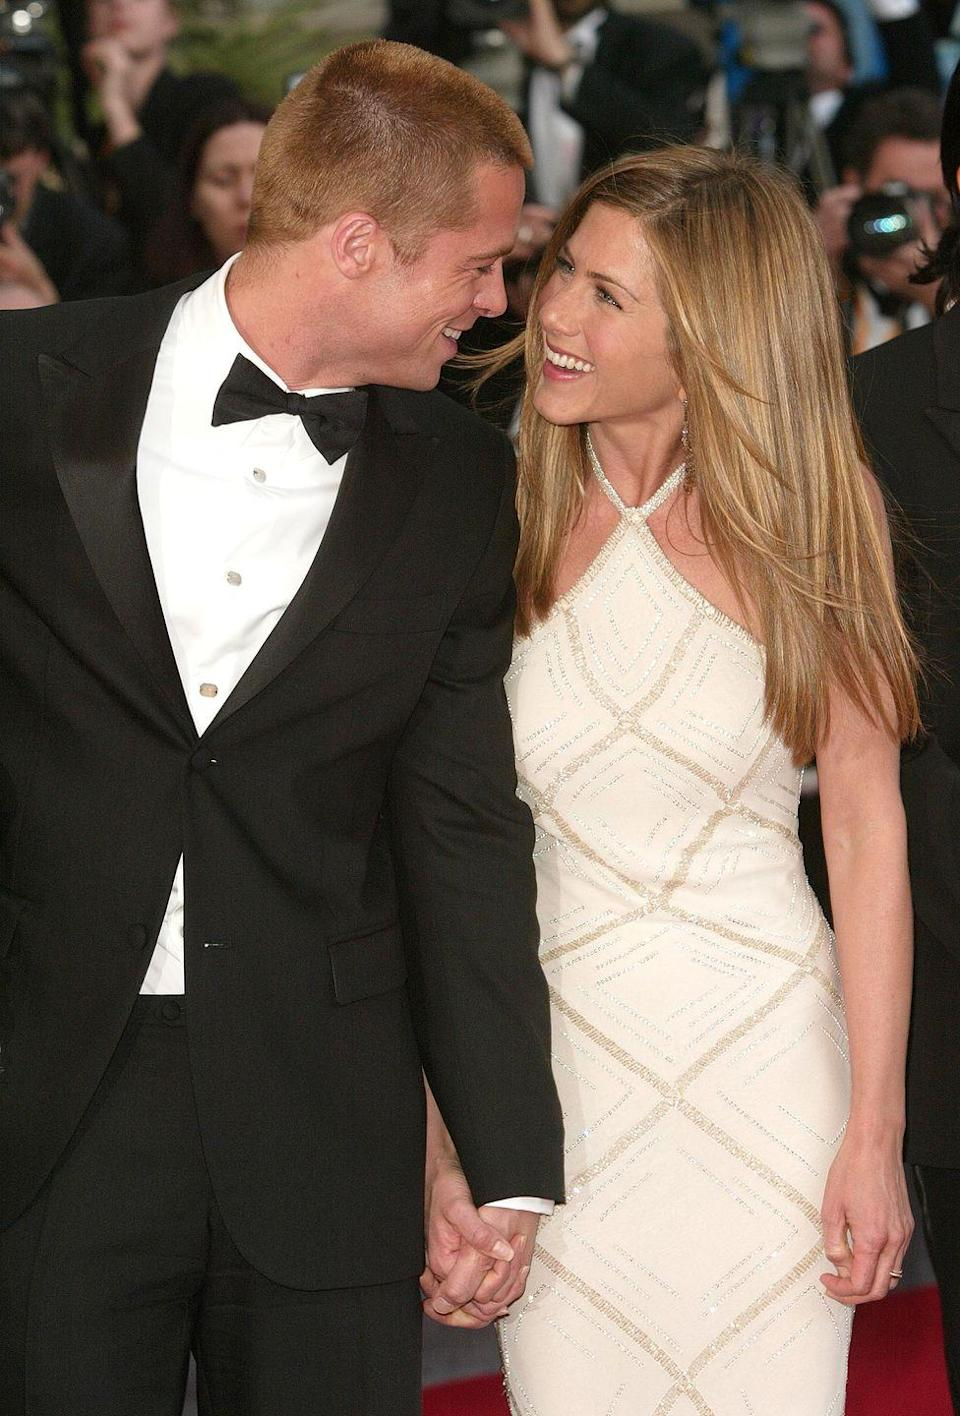 "<p>Golden couple Brad Pitt and Jennifer Aniston married in Malibu on July 29th, 2000. The now-divorced couple <a href=""http://www.people.com/people/archive/article/0,,20132034,00.html"" rel=""nofollow noopener"" target=""_blank"" data-ylk=""slk:reportedly recited quirky vows"" class=""link rapid-noclick-resp"">reportedly recited quirky vows</a>, that included Brad pledging to ""split the difference on the thermostat"" and Jennifer promising to always make his ""favorite banana milk shake.""</p>"